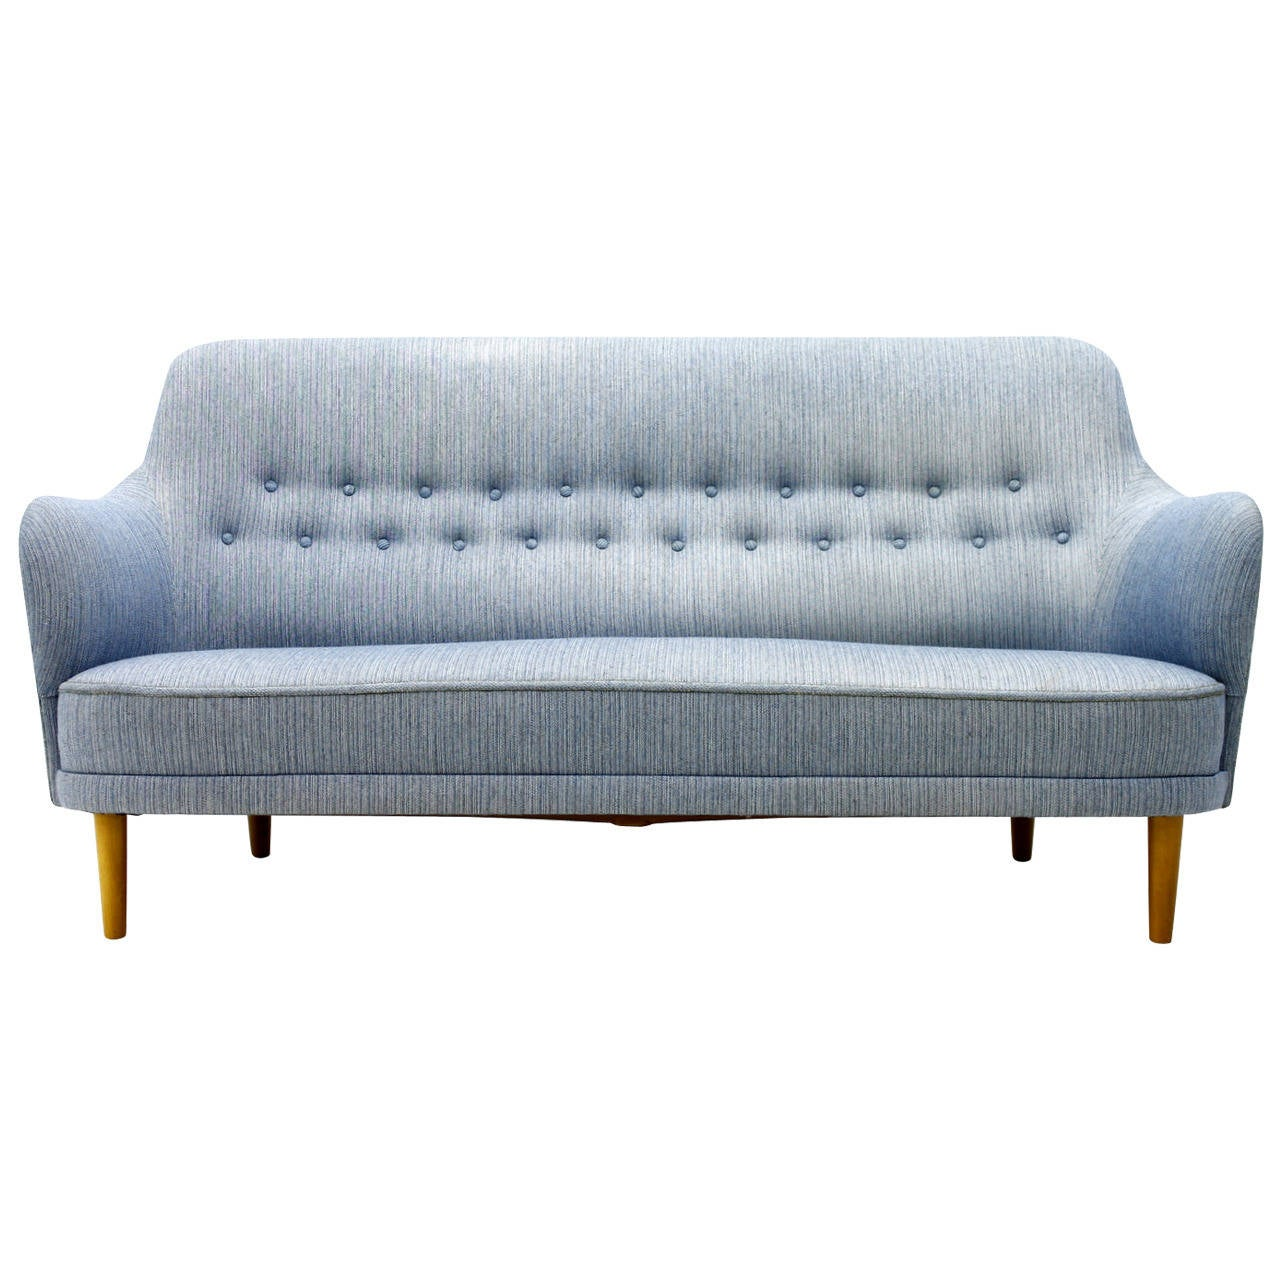 Carl Malmsten Sofa with light blue Fabric, Sweden, 1940s For Sale